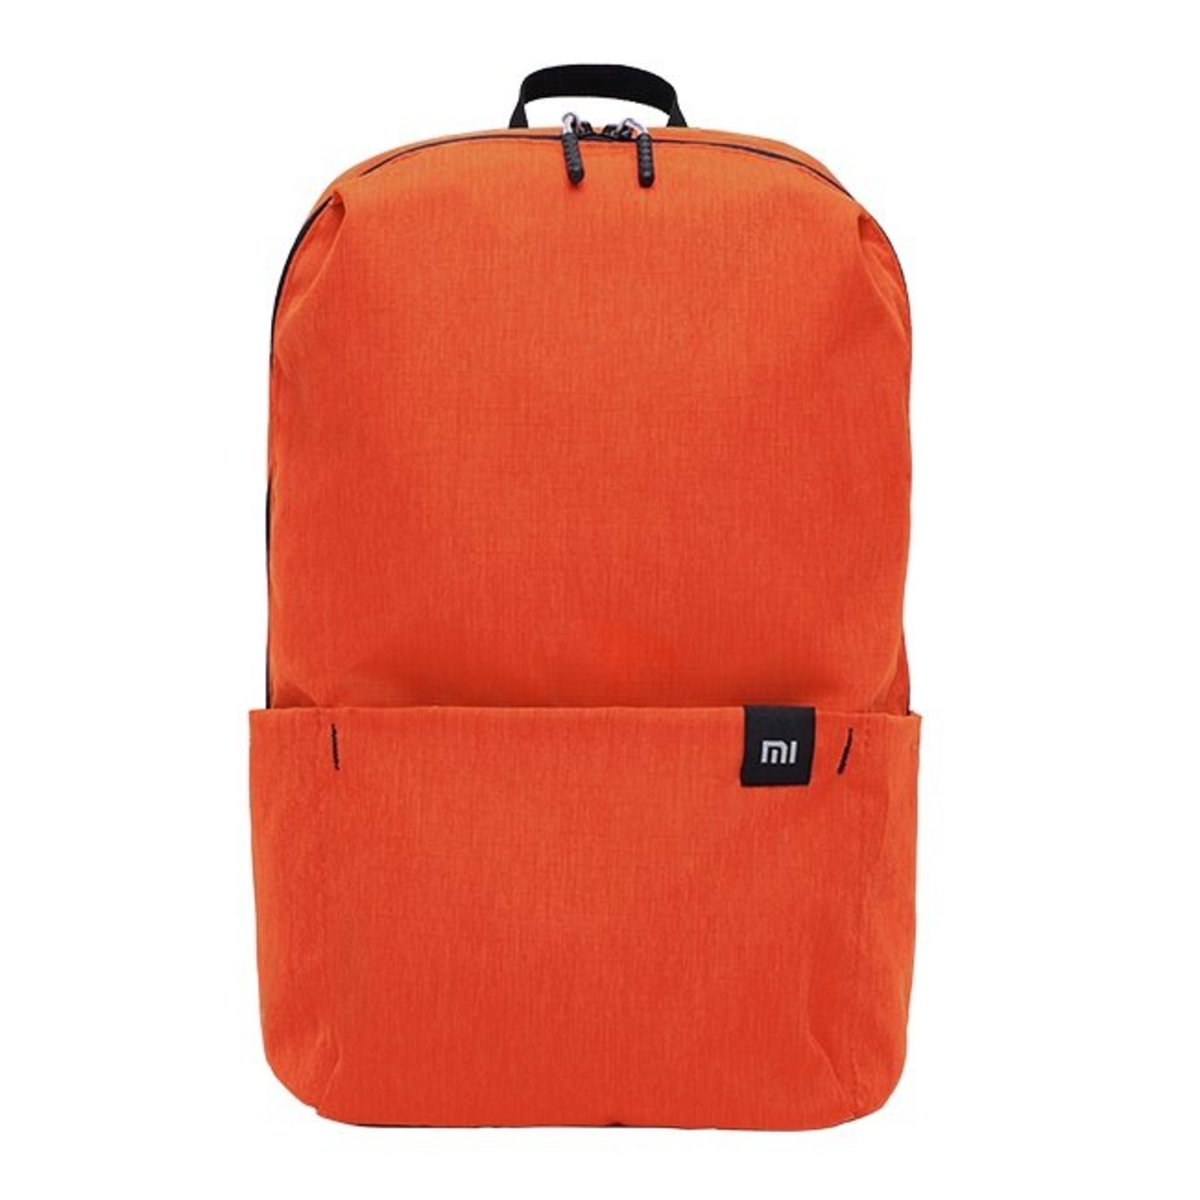 Water Resistant 10L Backpack Orange